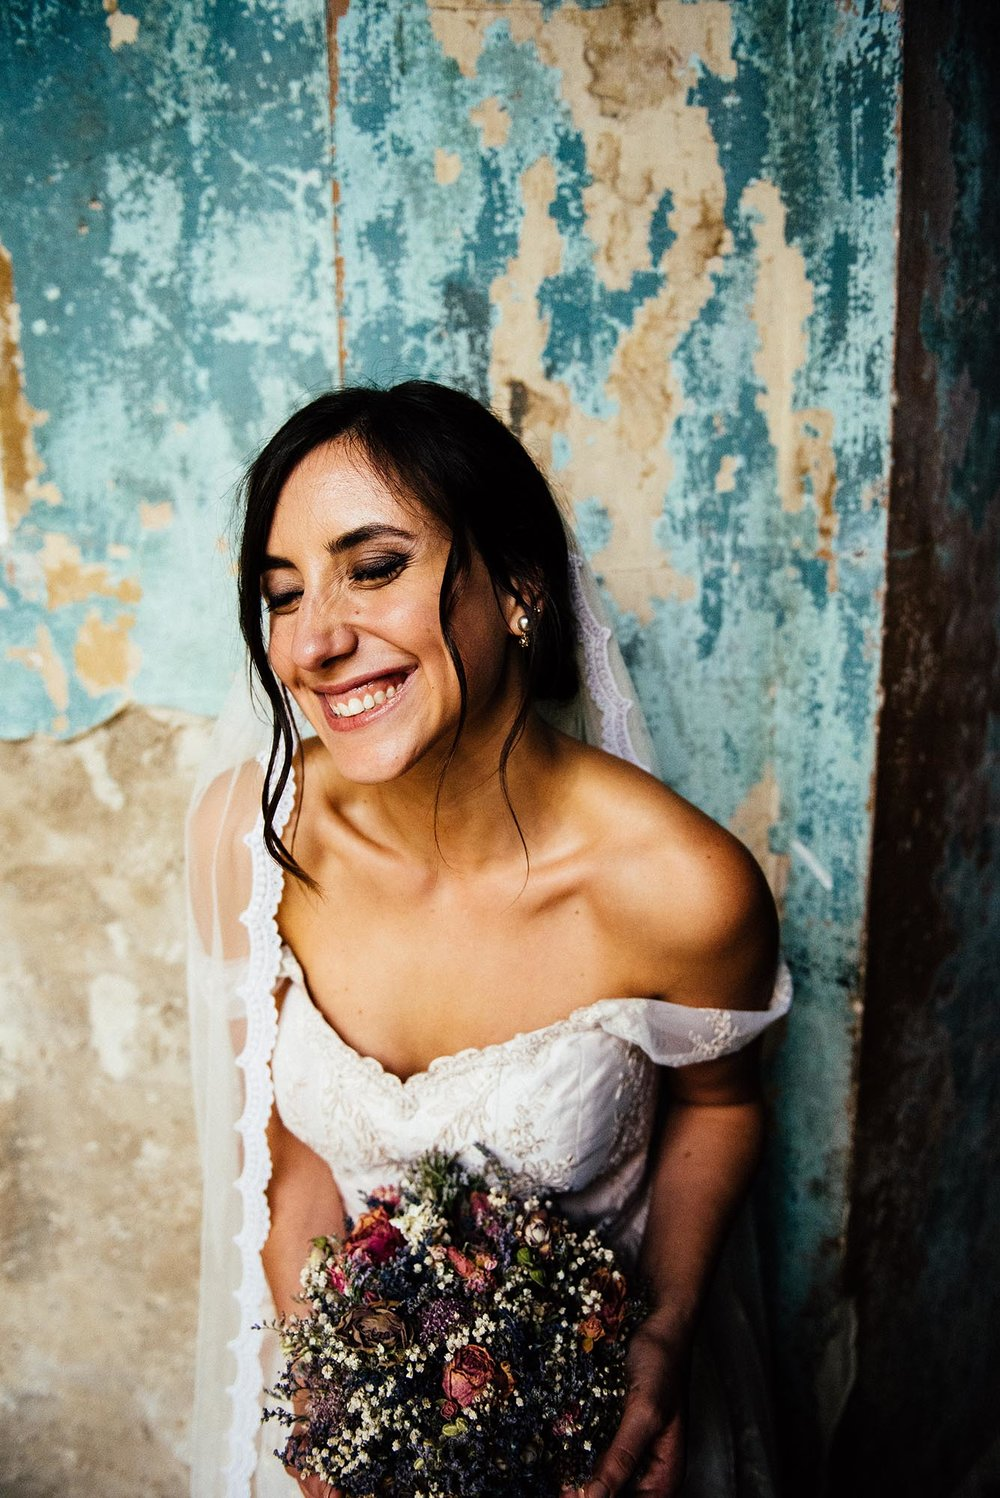 Asylum Peckham wedding photography